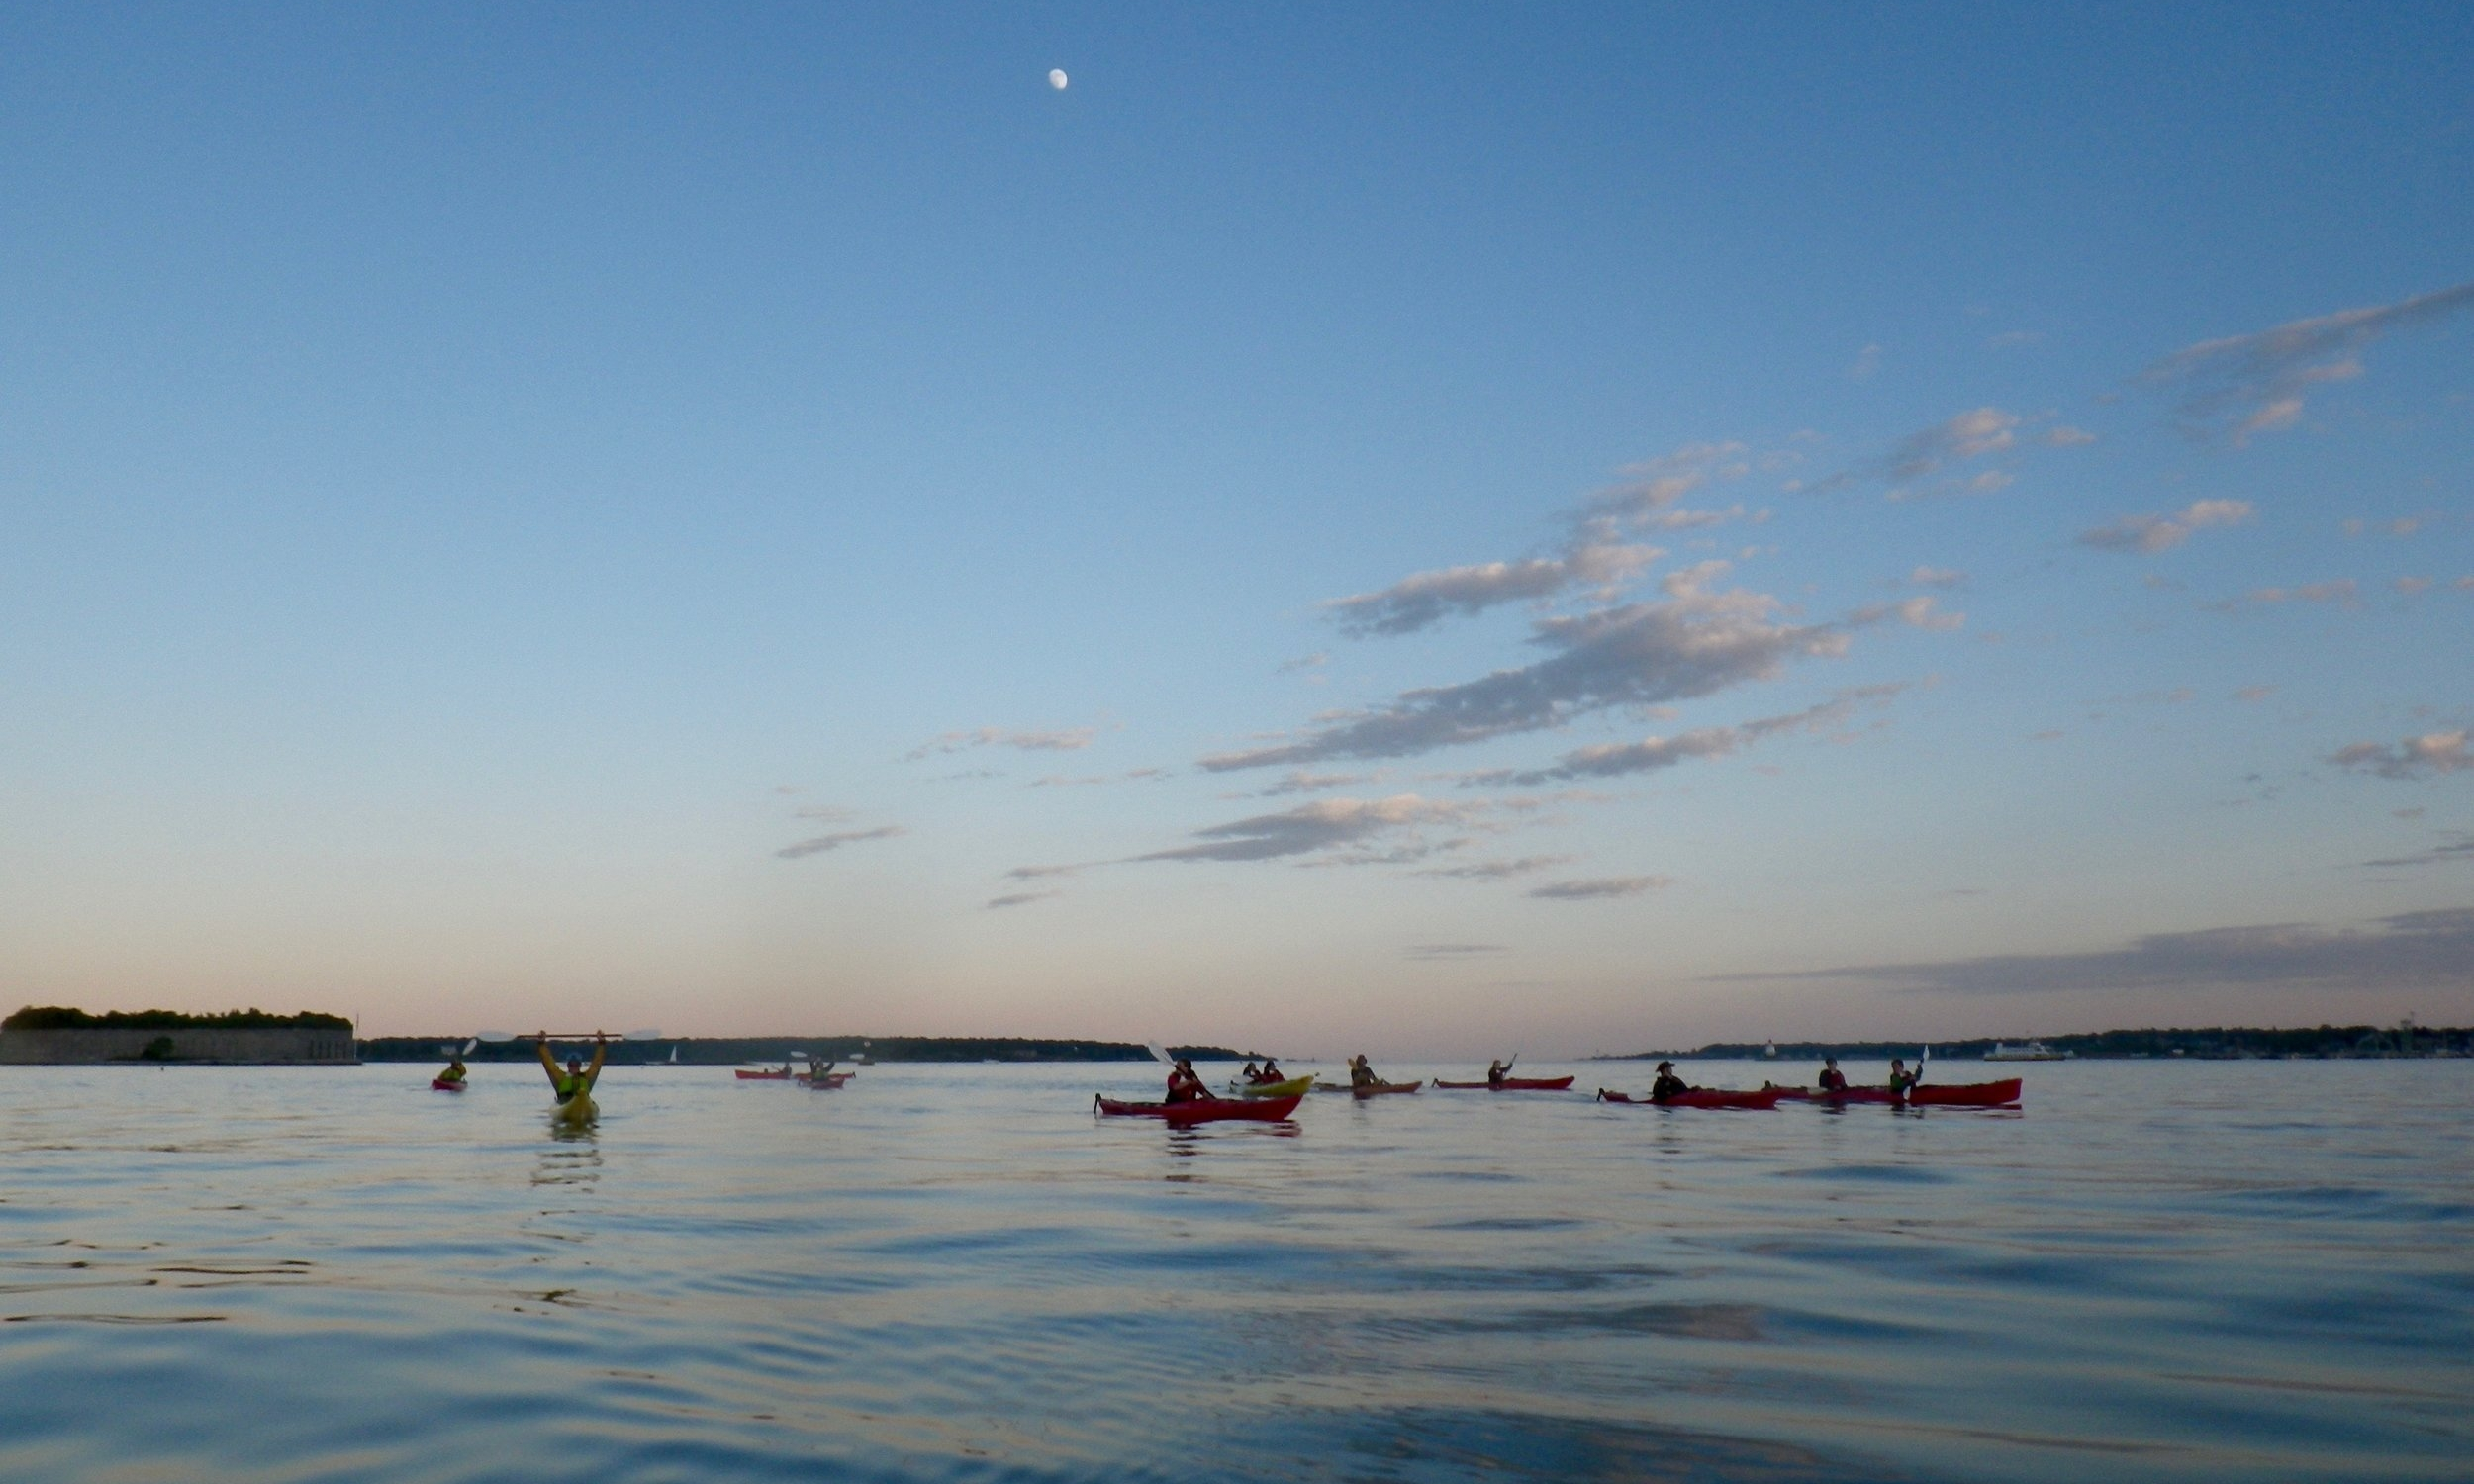 Moonlight Paddle - Every Friday evening (departure time varies with sunset; click the button below to view time slots)$45 per person, $35 for kids 12-17